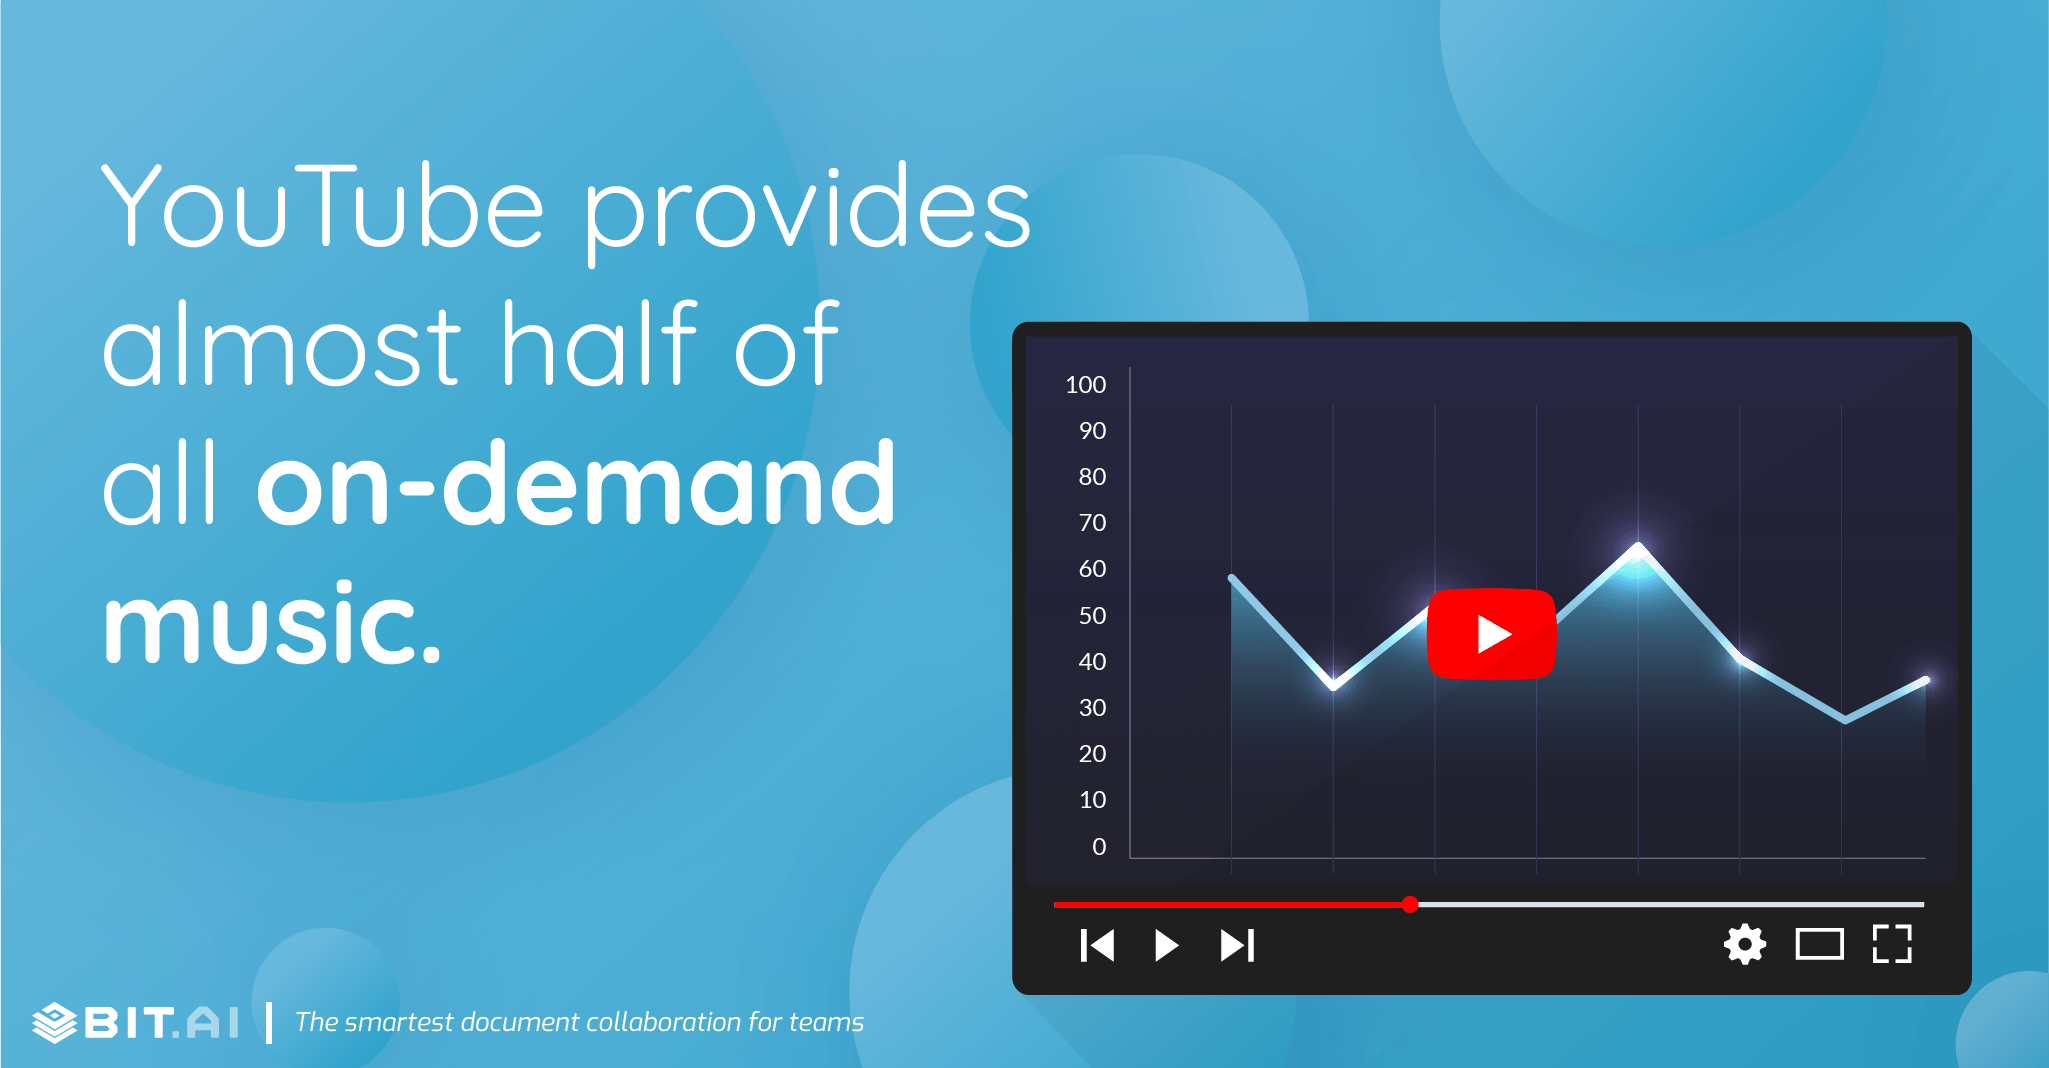 YouTube provides almost half of all on-demand music.